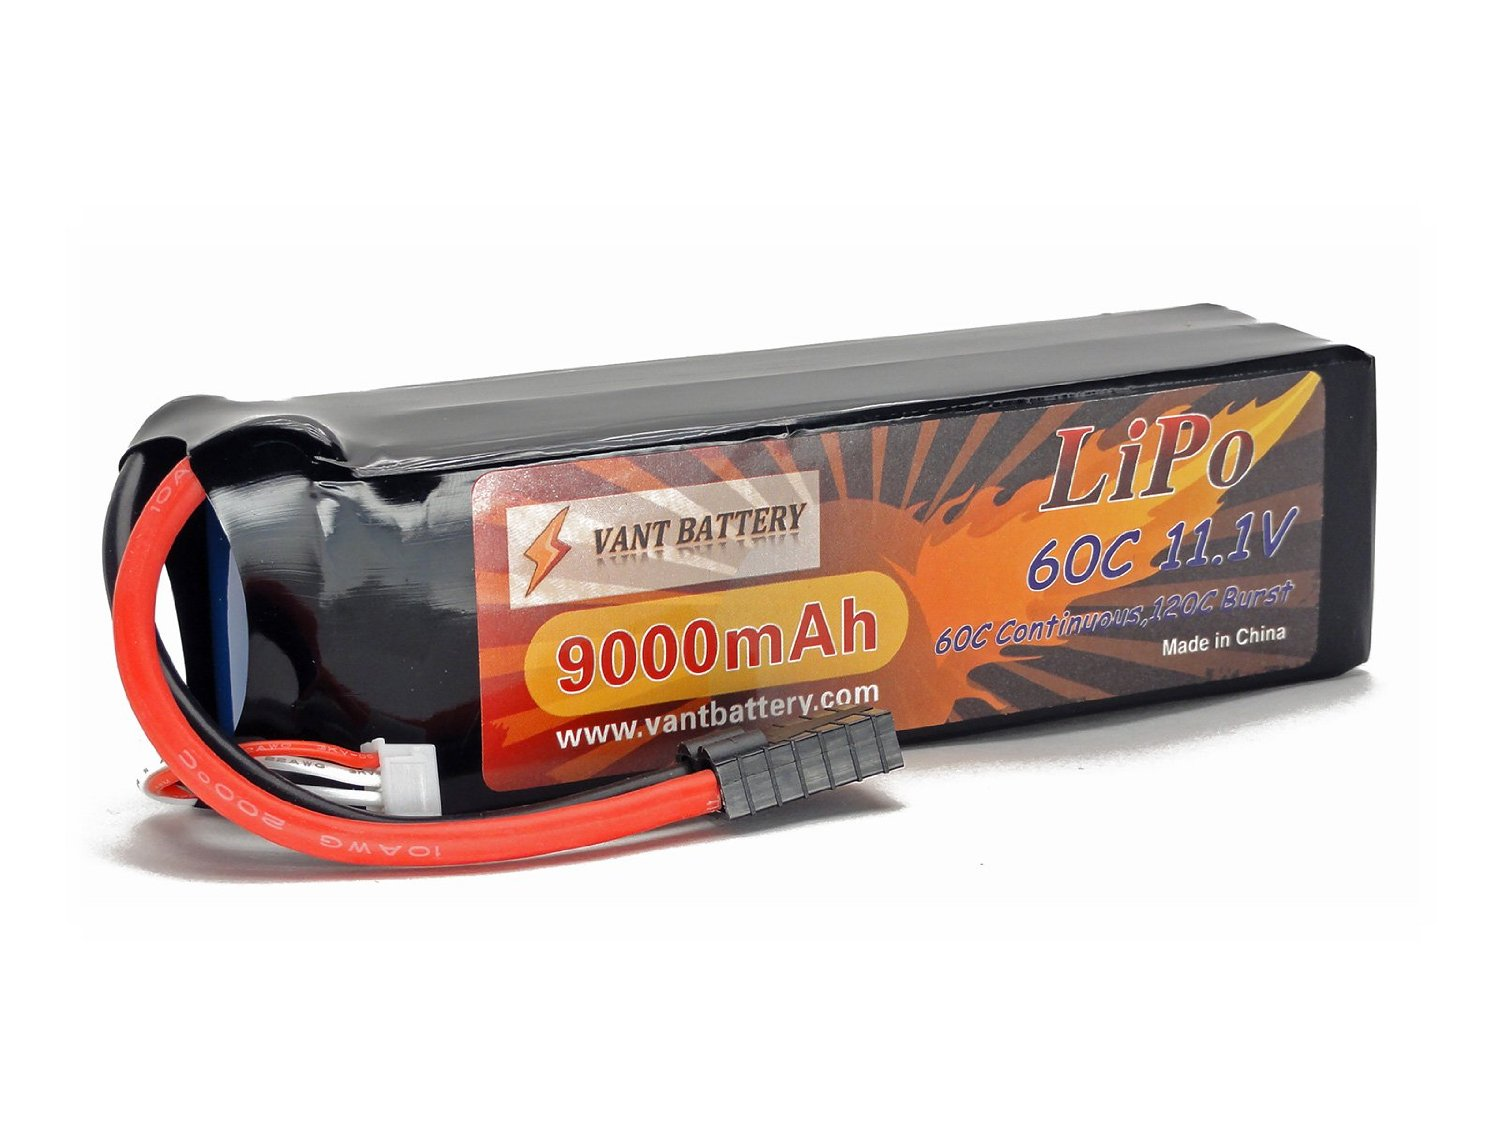 11.1V 9000mAh 3S Cell 60C-120C LiPo Battery Pack w/Traxxas High Current Style Connector (Fits X-Maxx, Slash 4x4 & 2WD, XO-1, Rally)